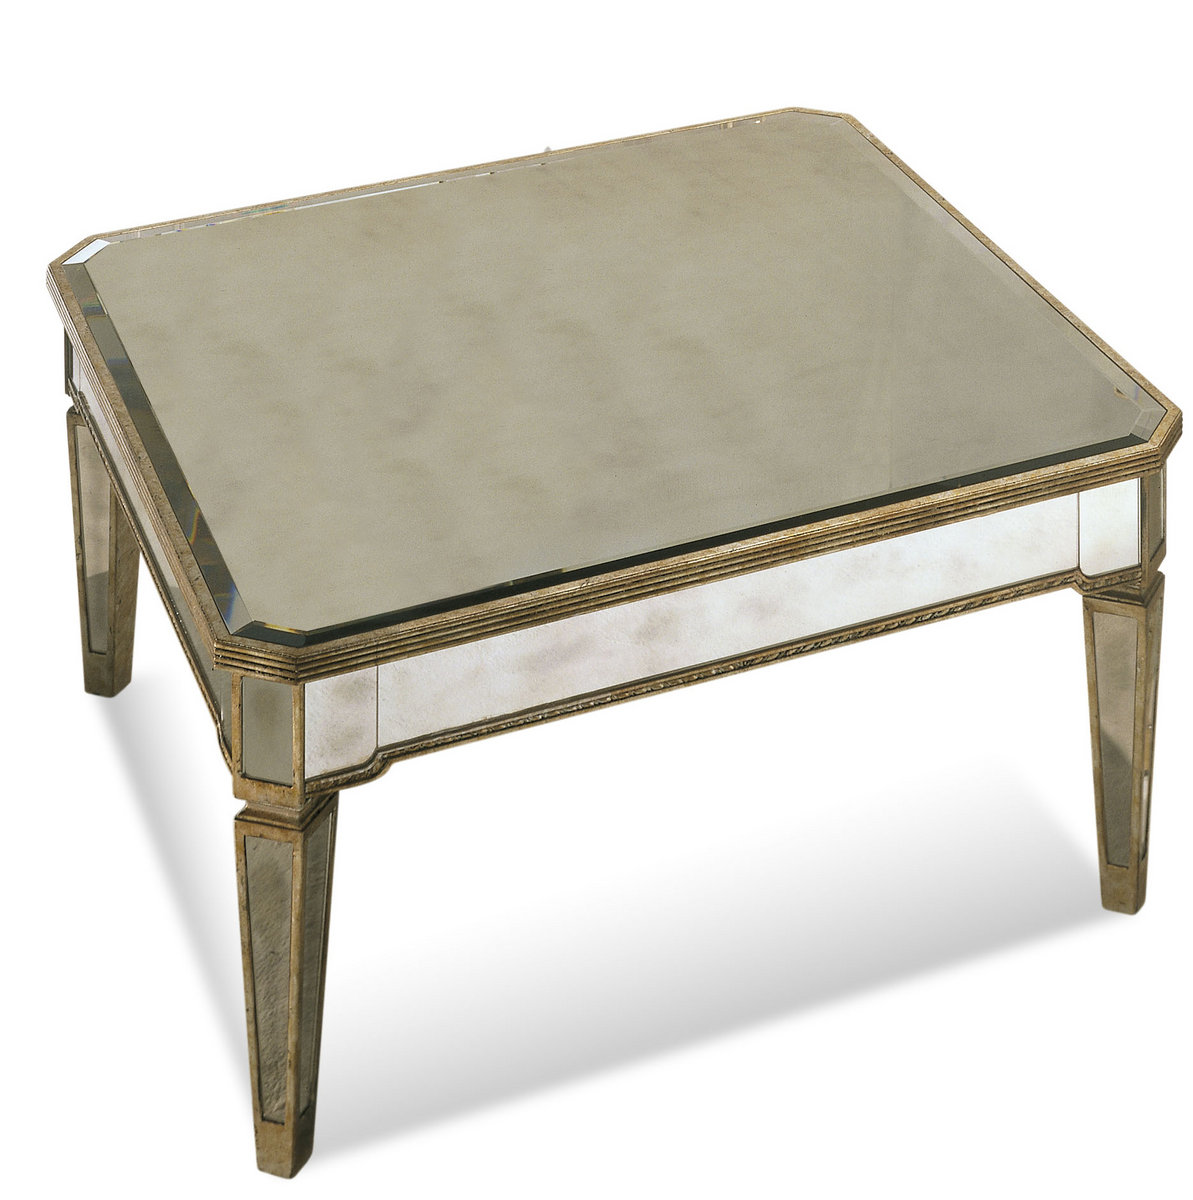 borghese mirrored furniture. Borghese Mirrored Square Cocktail Table (Antique Mirror \u0026 Silver Leaf Finish) - [8311-130] Furniture